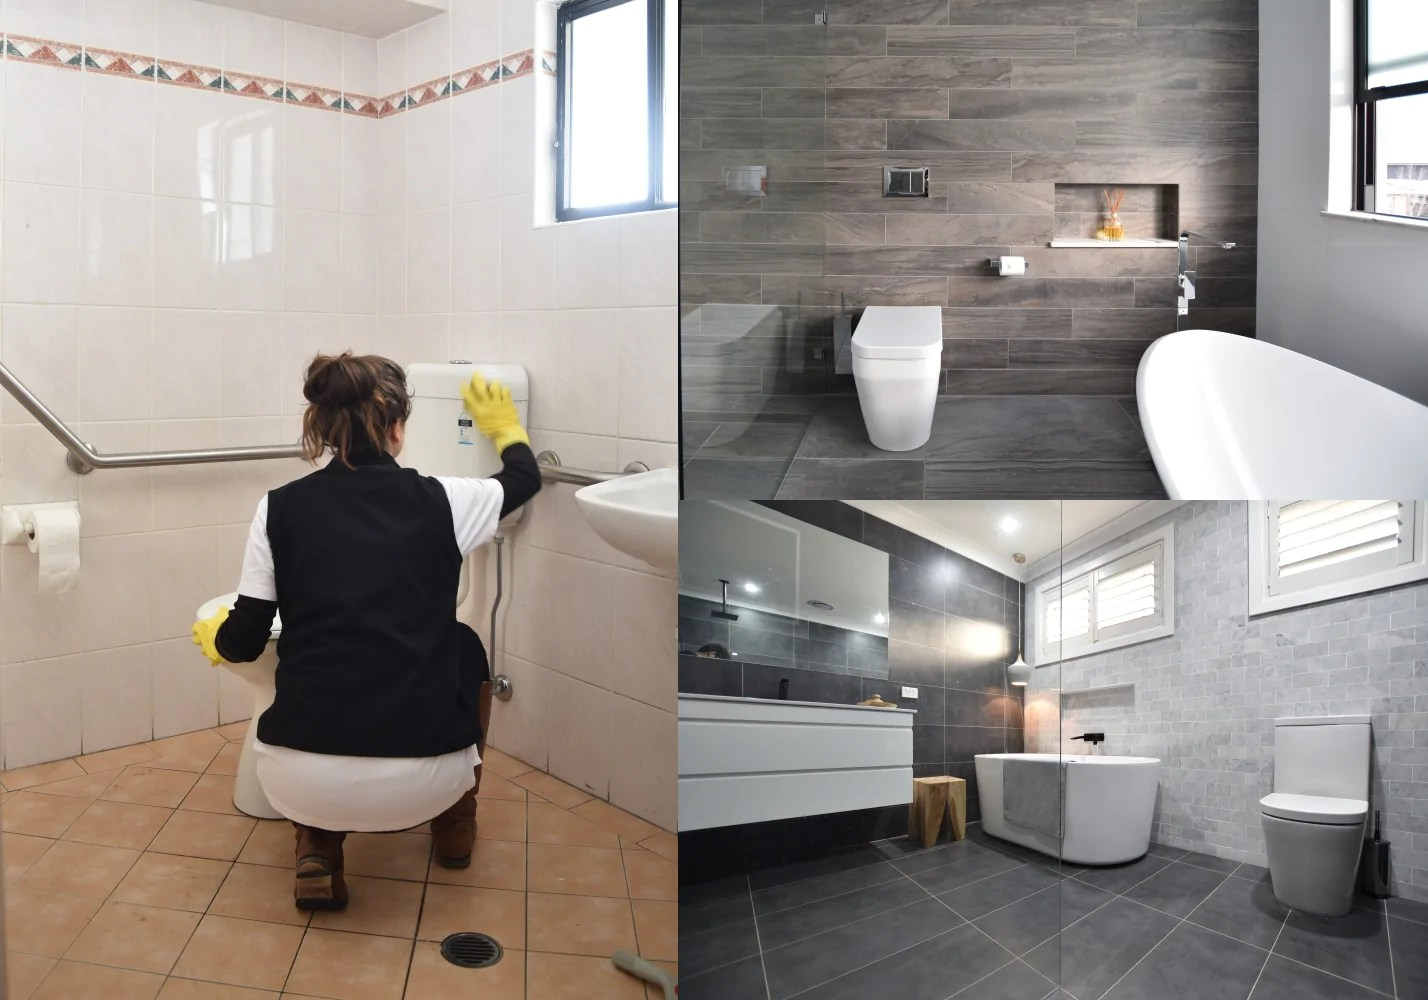 How To Make Your New Bathroom Easy To Clean By Design 5 Tips Ats Tiles Bathrooms